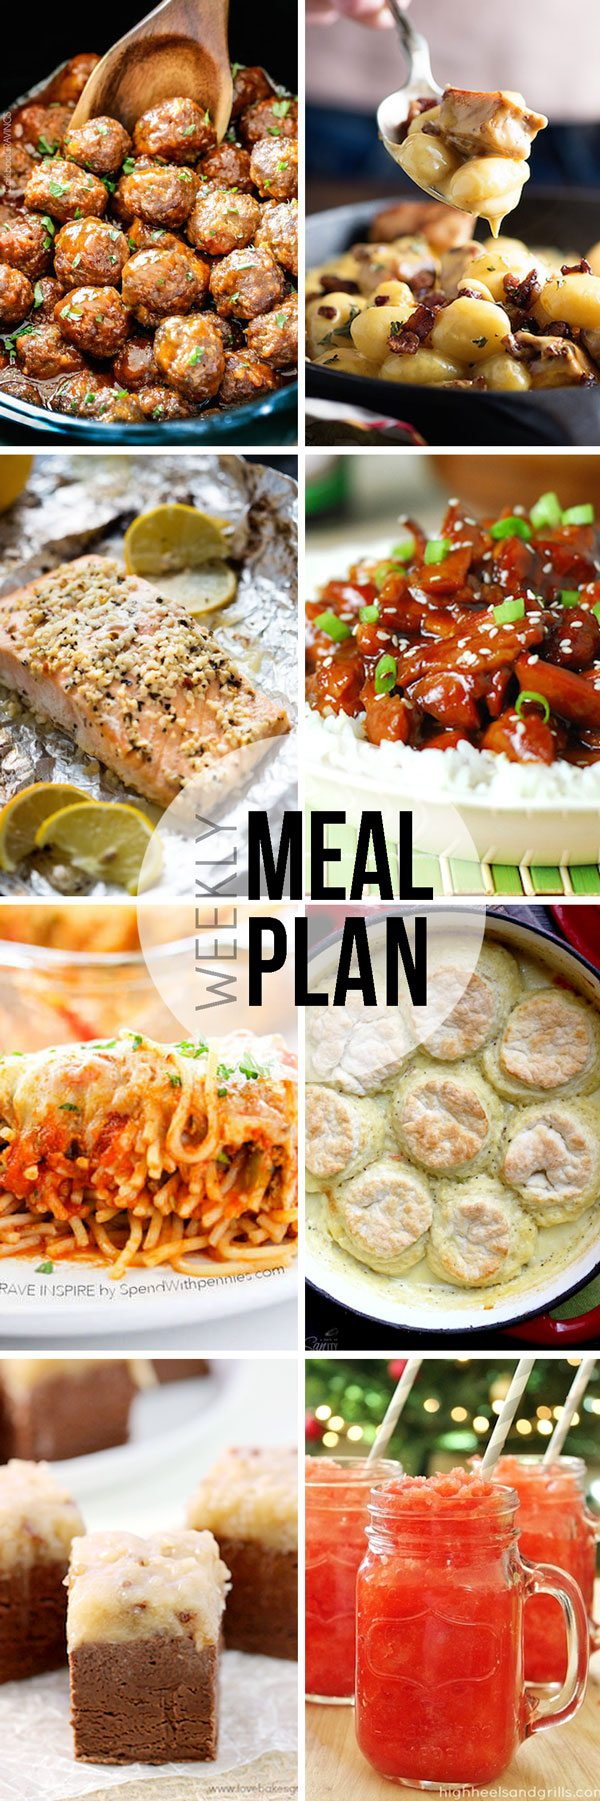 Meal-Plan---Pinterest-25